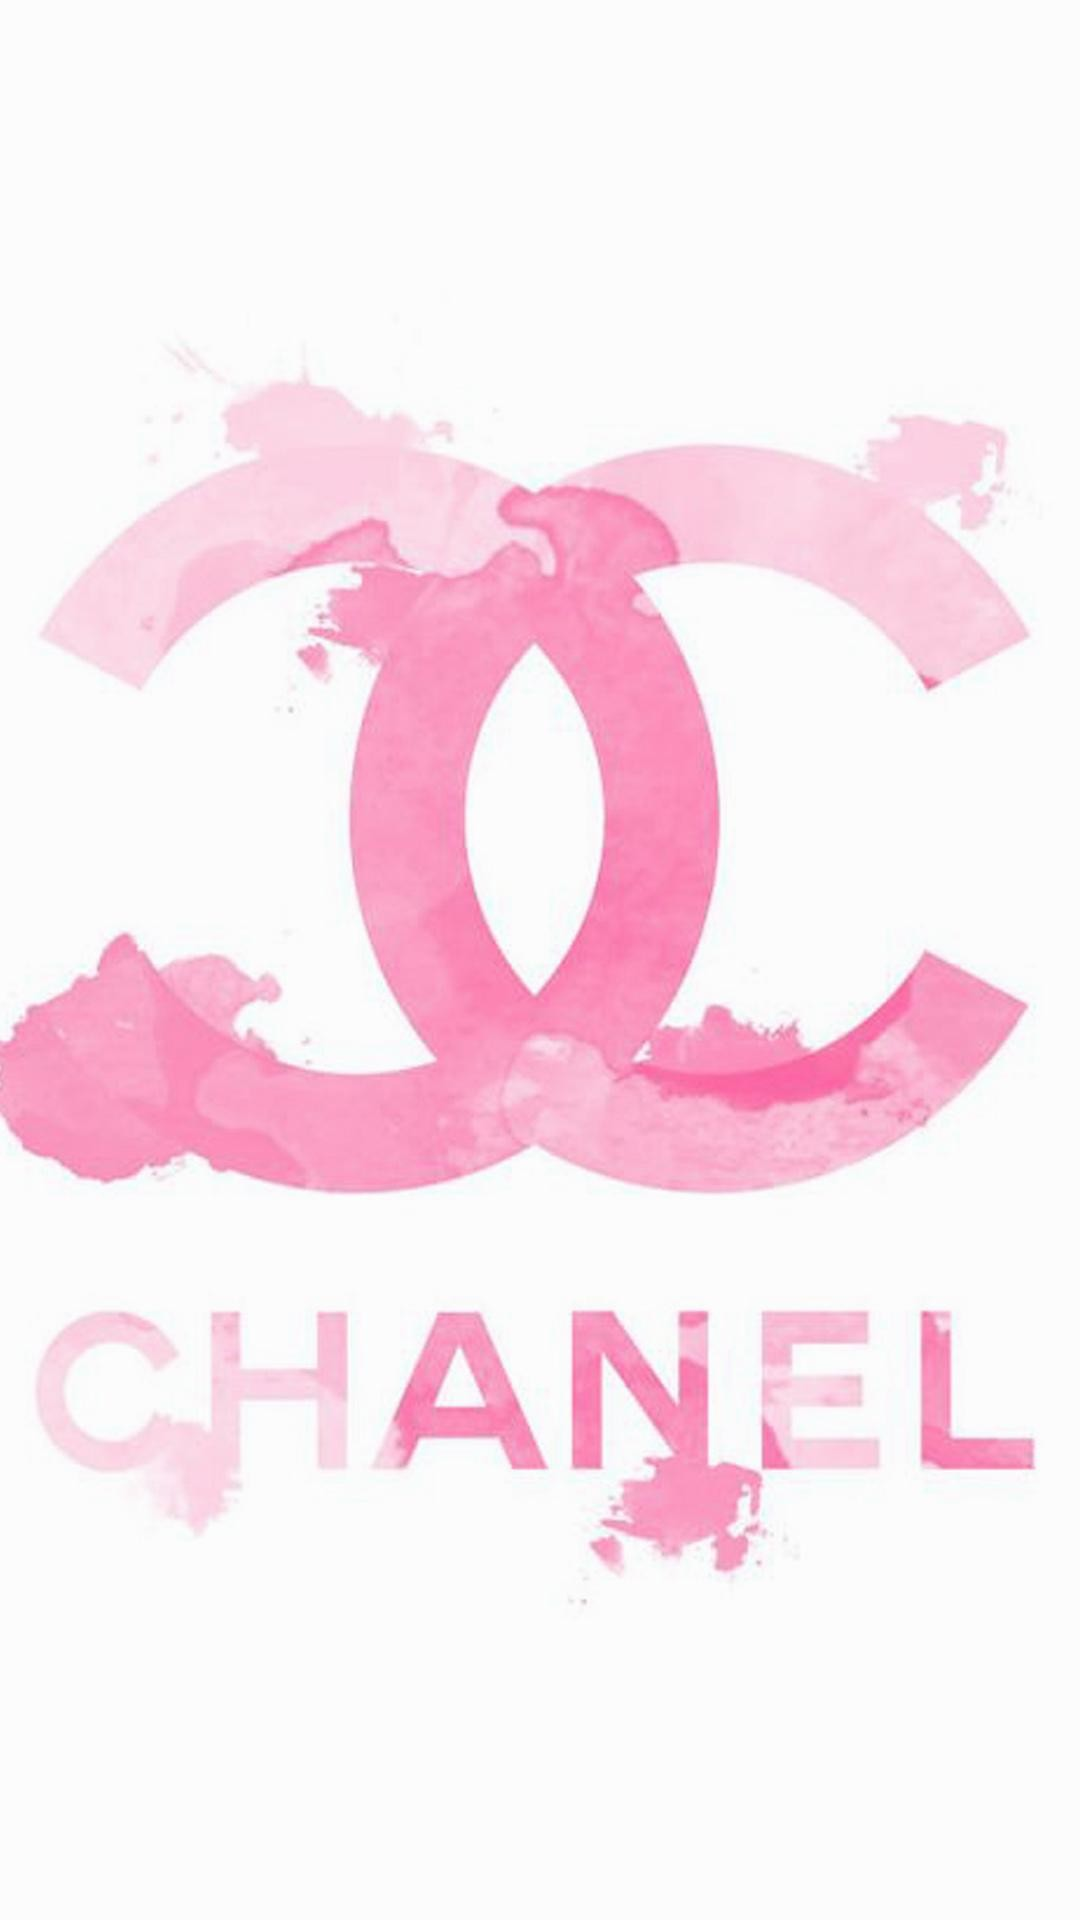 Girly Quotes Wallpapers For Mobile Chanel Wallpaper For Iphone 62 Images